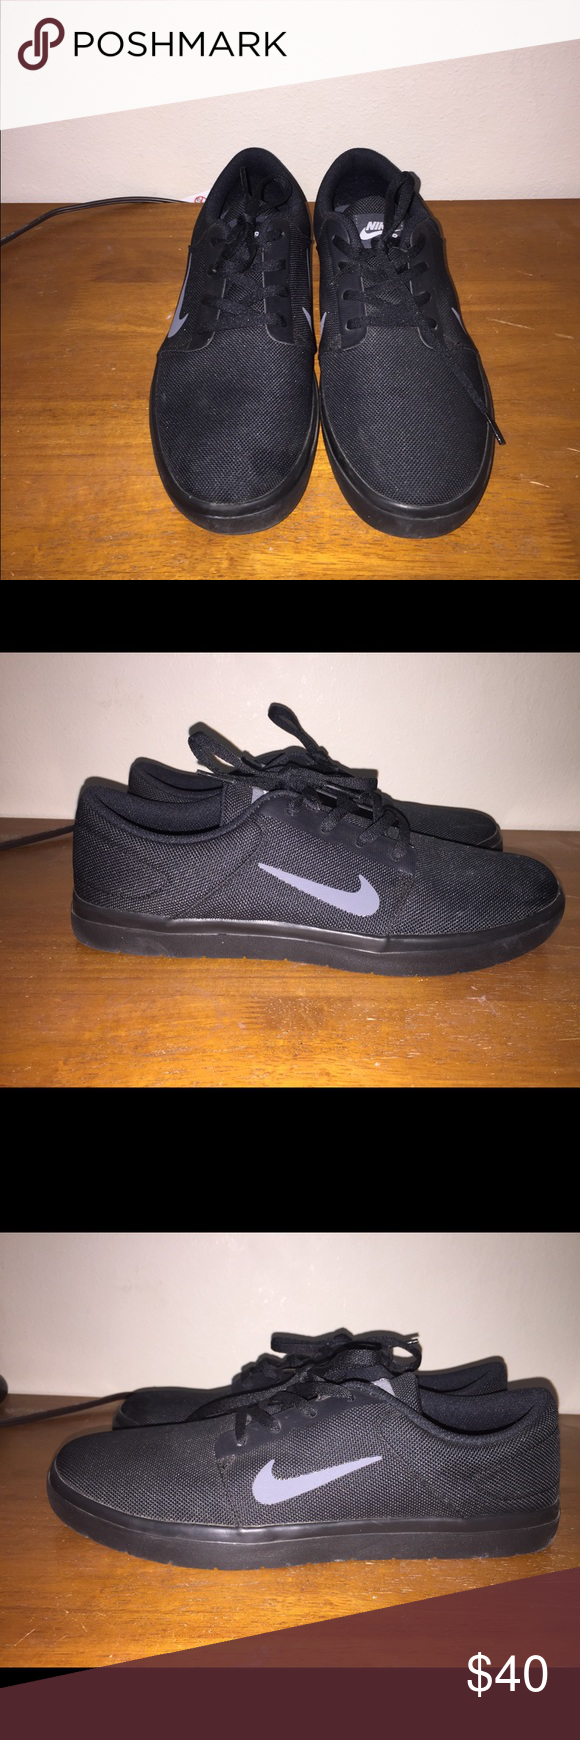 used mens nike shoes size 10 844176